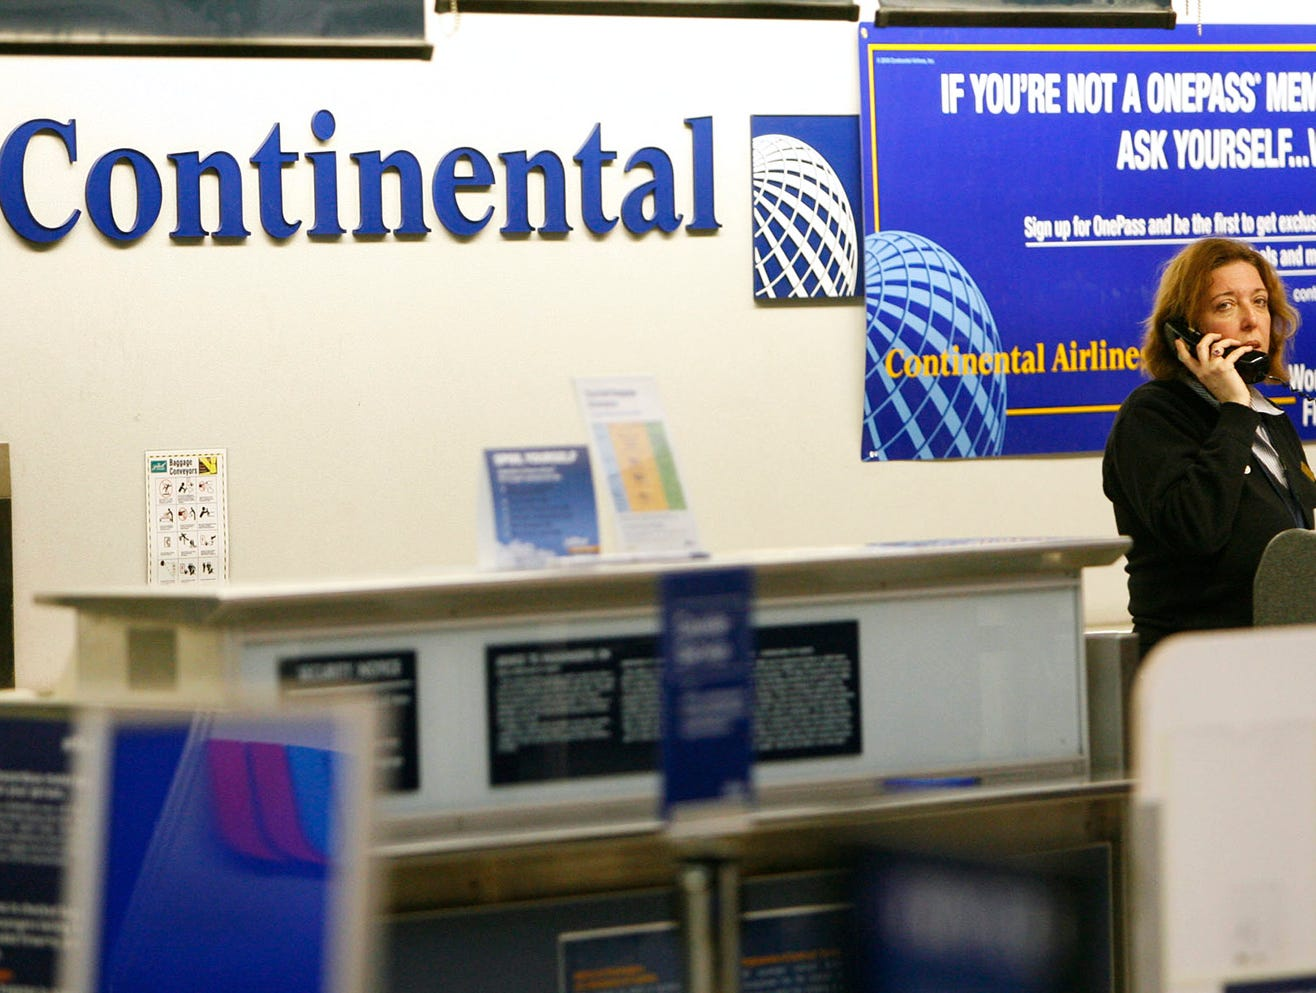 A Continential Airlines employee talks on the phone at  the Buffalo Niagara Airport on Thursday Feb. 12, 2009 after Continental Airlines Flight 3407 crashed into a home in Clarence Center, N.Y. killing all 48 people on board and one on the ground according to officials.